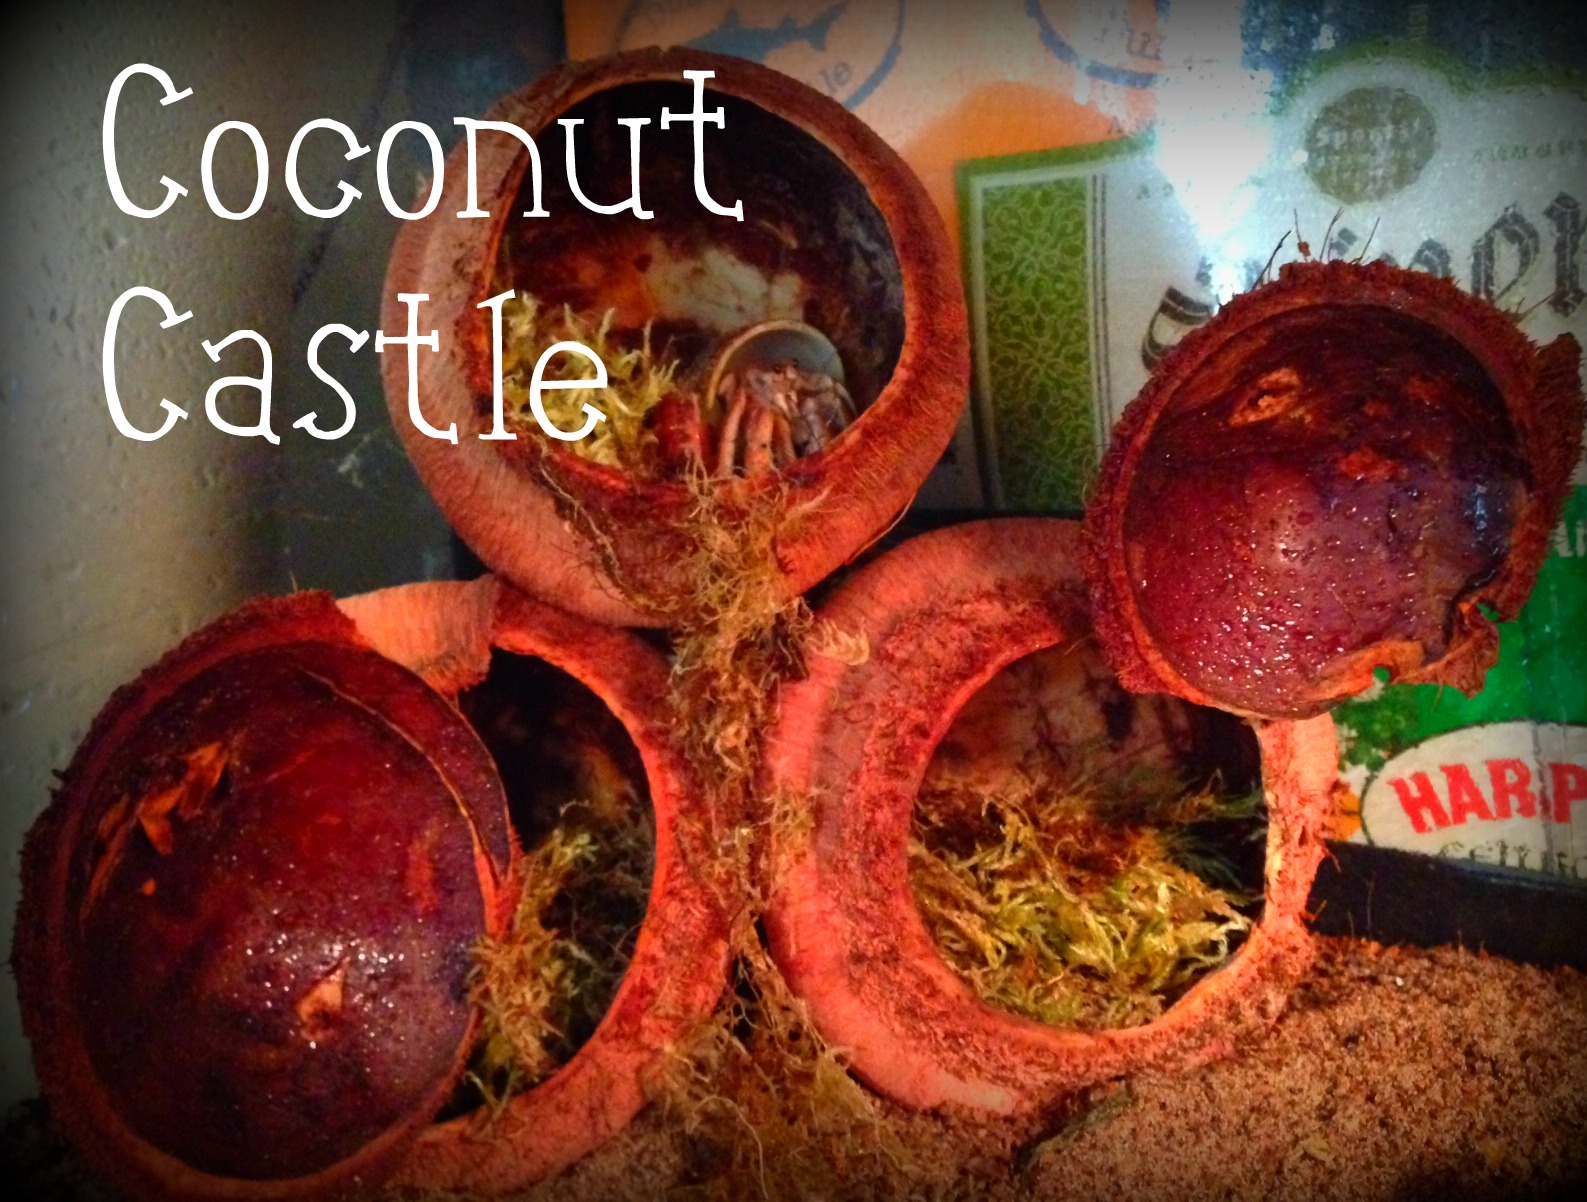 How to spoil your hermit crabs: Coconut Castle